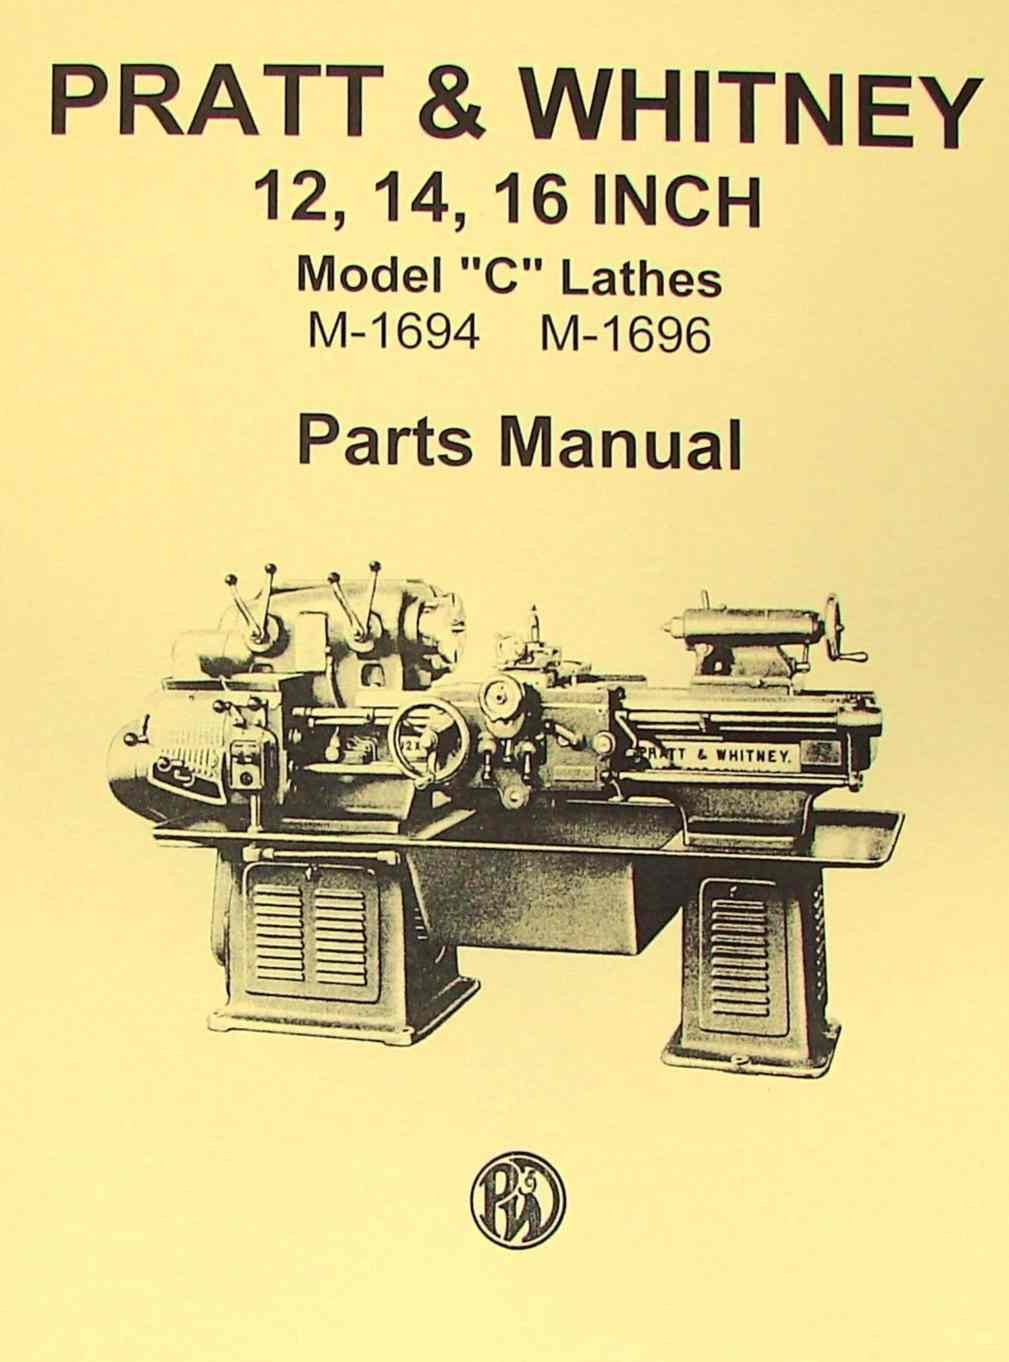 Pratt Whitney Model C Lathe 12 14 16 Parts Manual Misc Engine Diagram Books